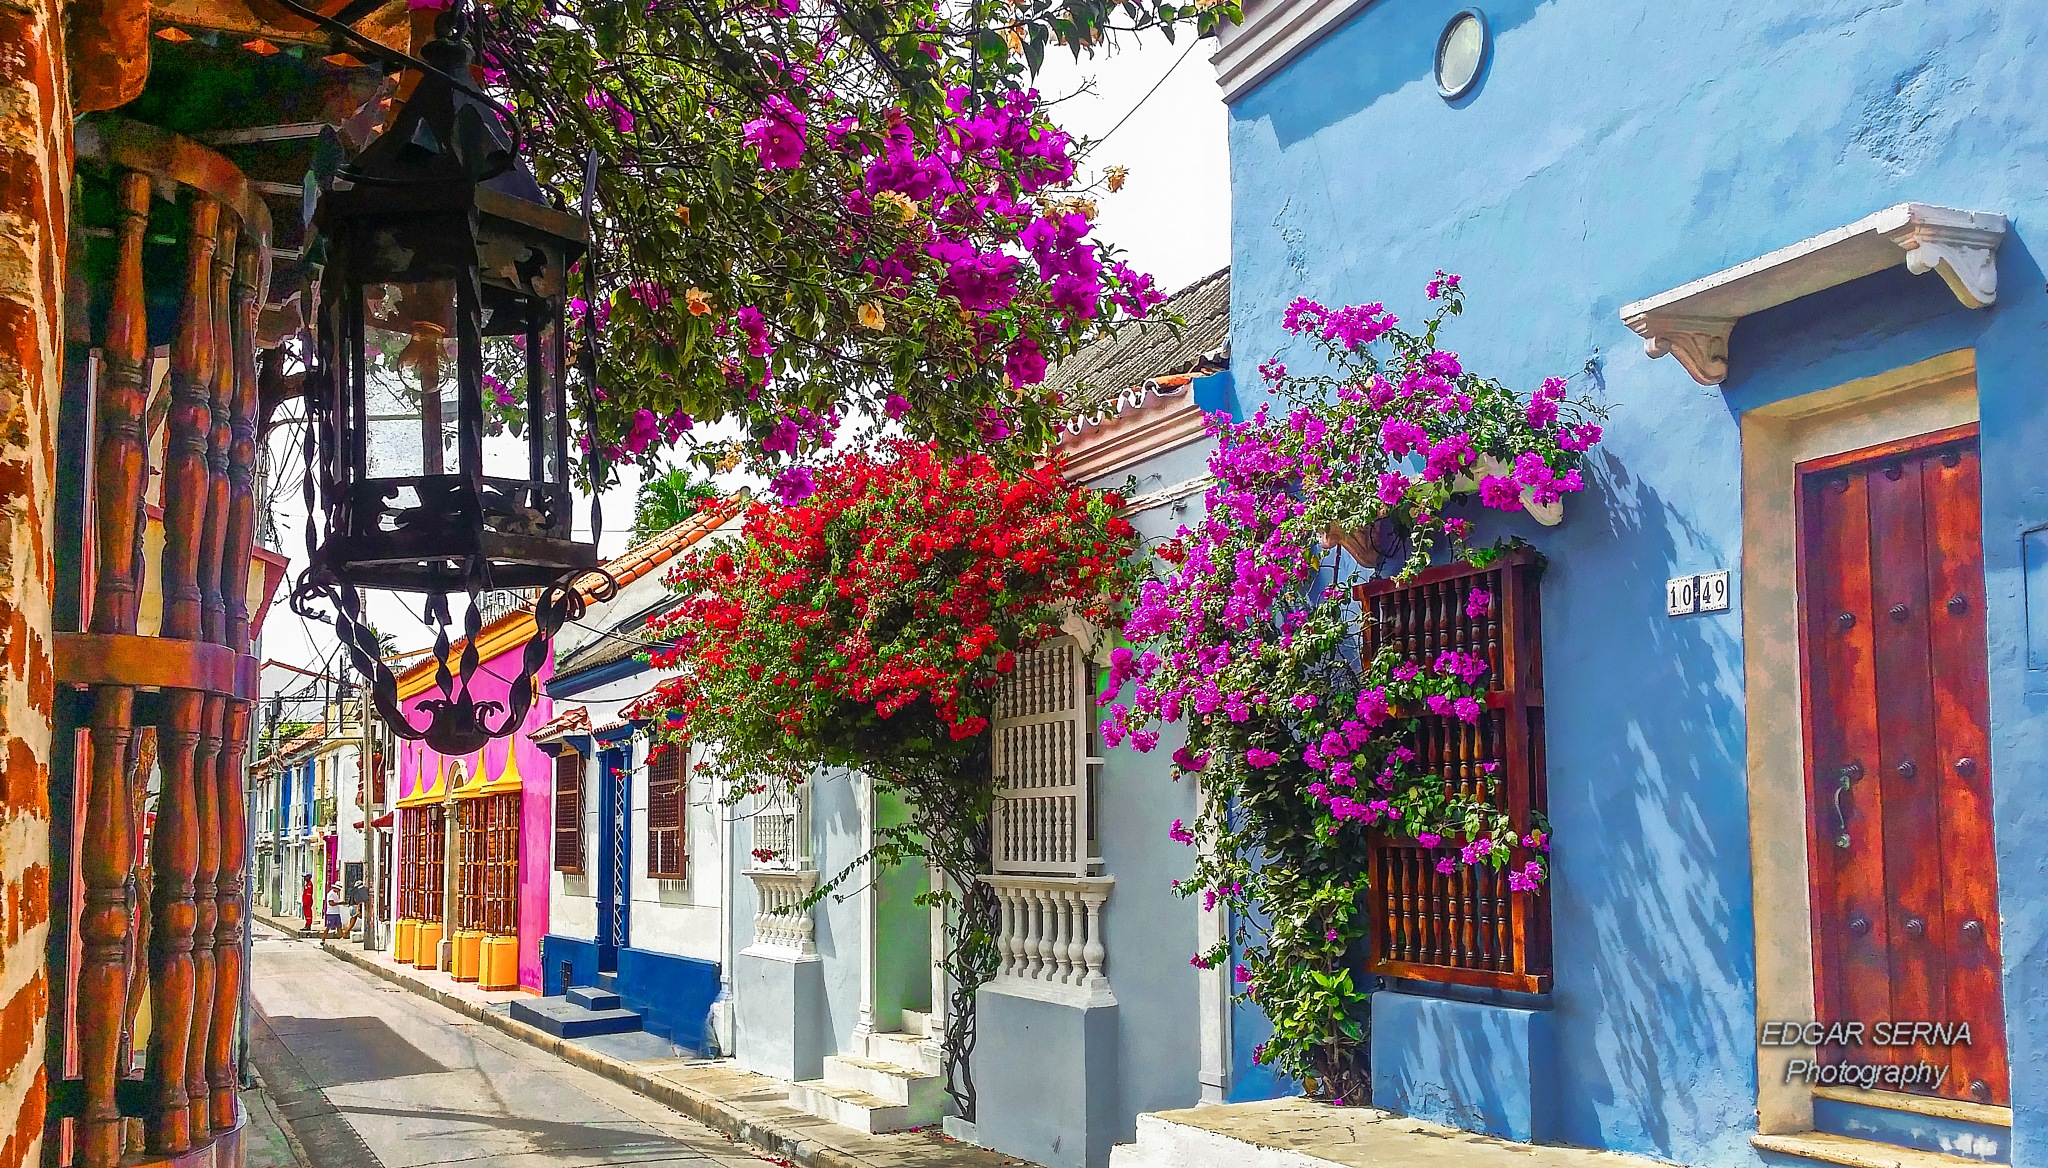 Streets of Cartagena by Edgar Serna